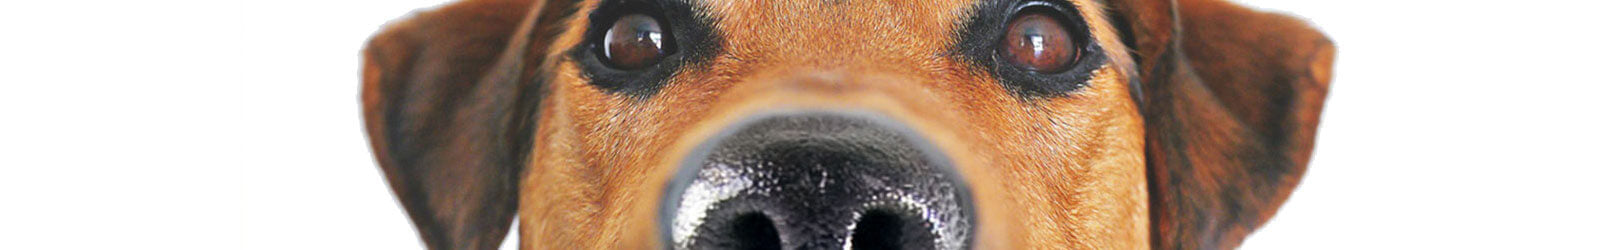 dog nose facts